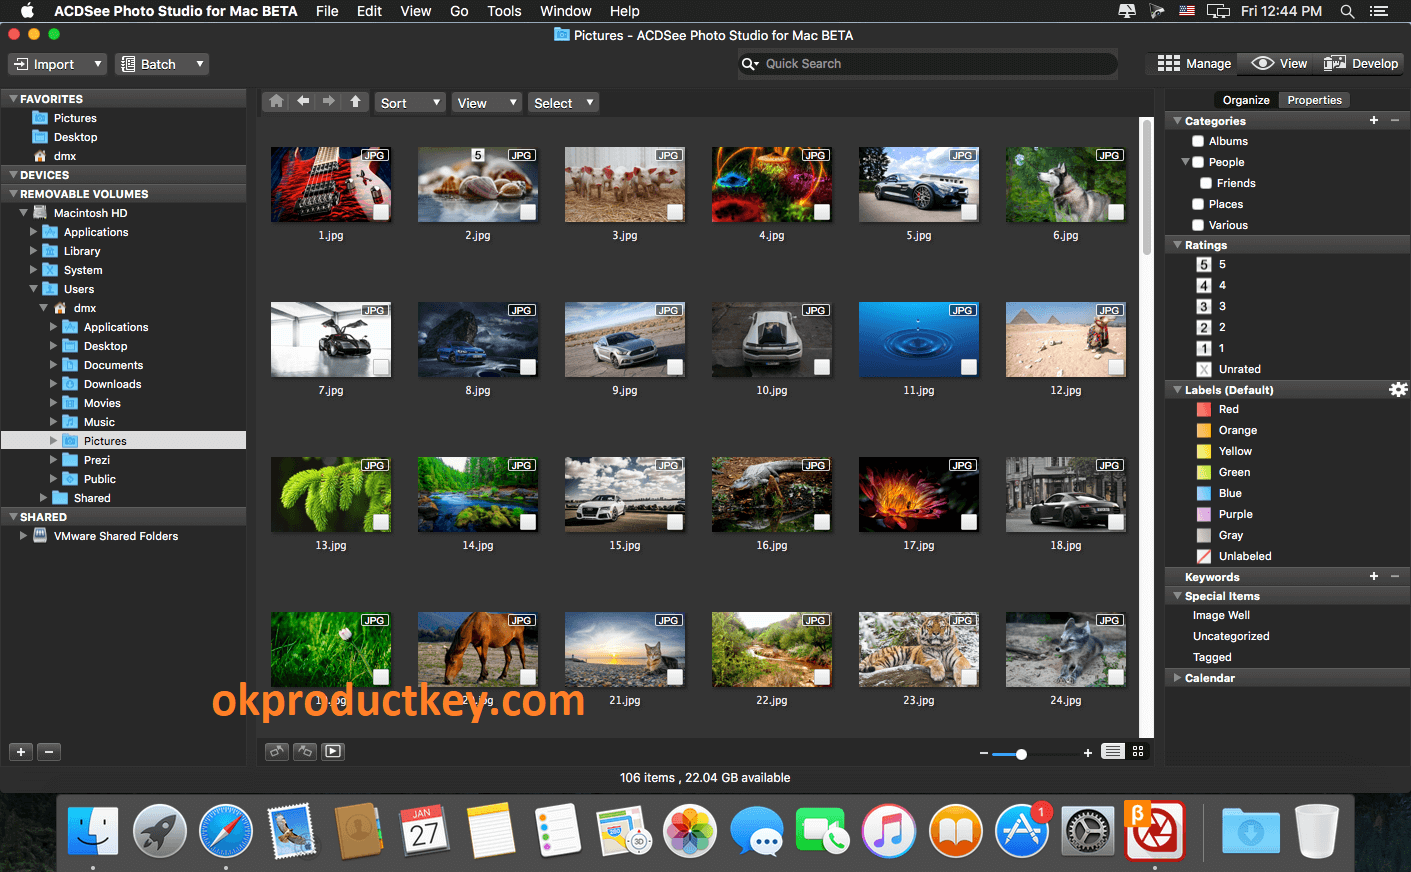 ACDSee Video Studio 4.0.1.1013 Crack With Activation Key Download